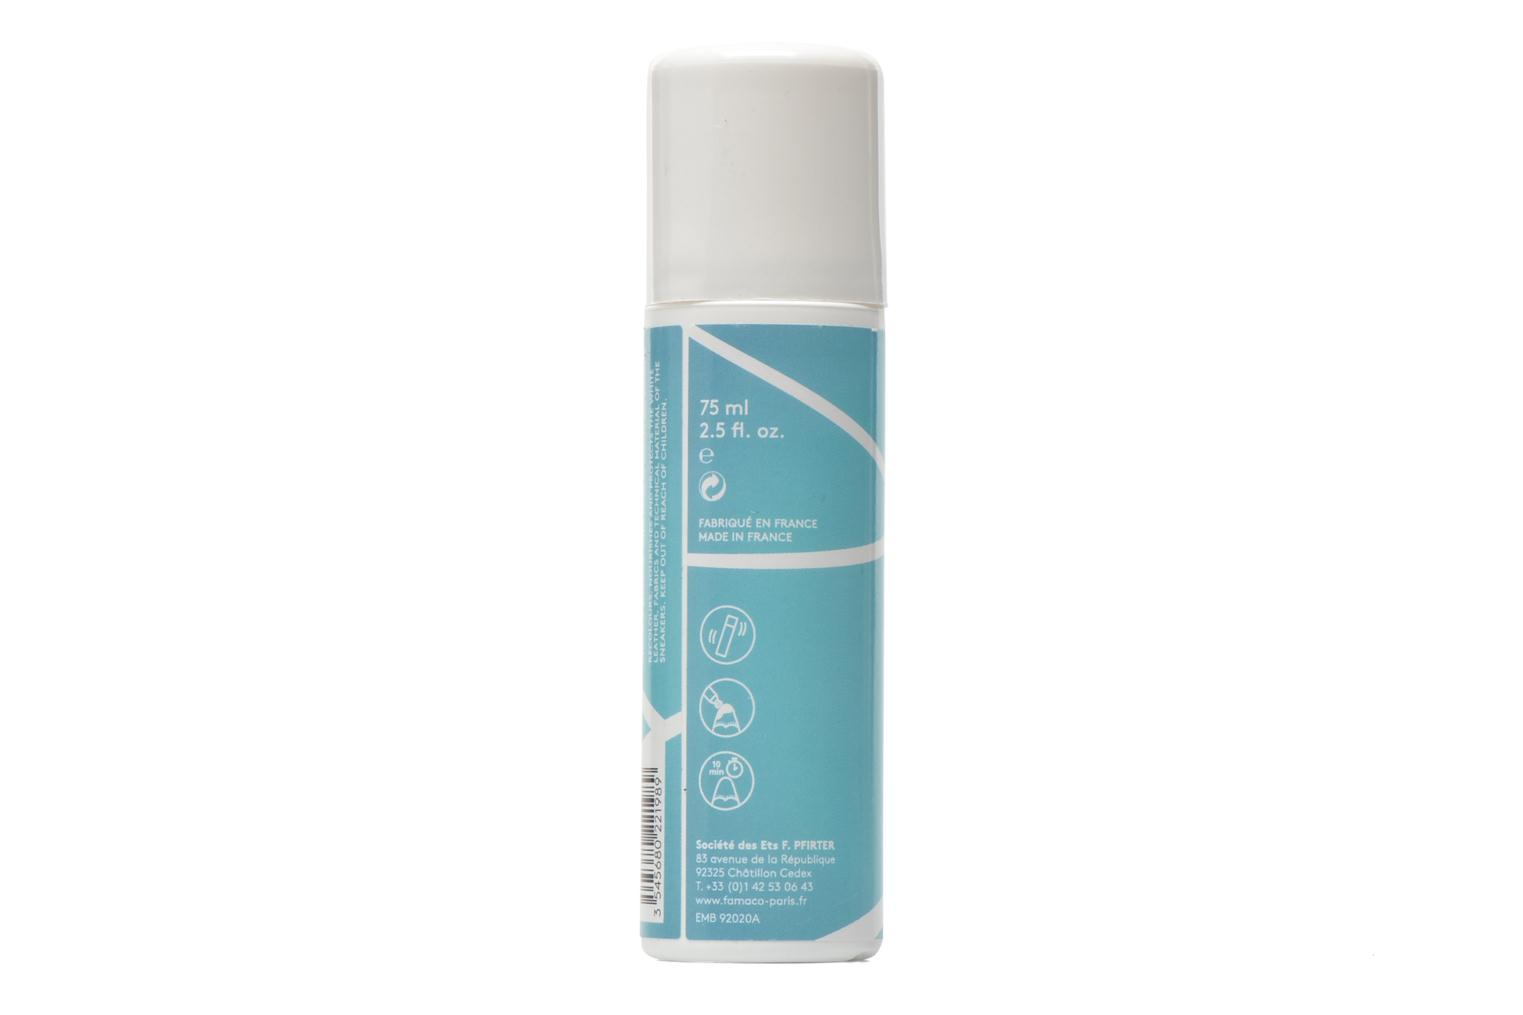 Accessori e pulizia Famaco Flacon Applicateur Sport White Express 75 Ml Bianco immagine sinistra